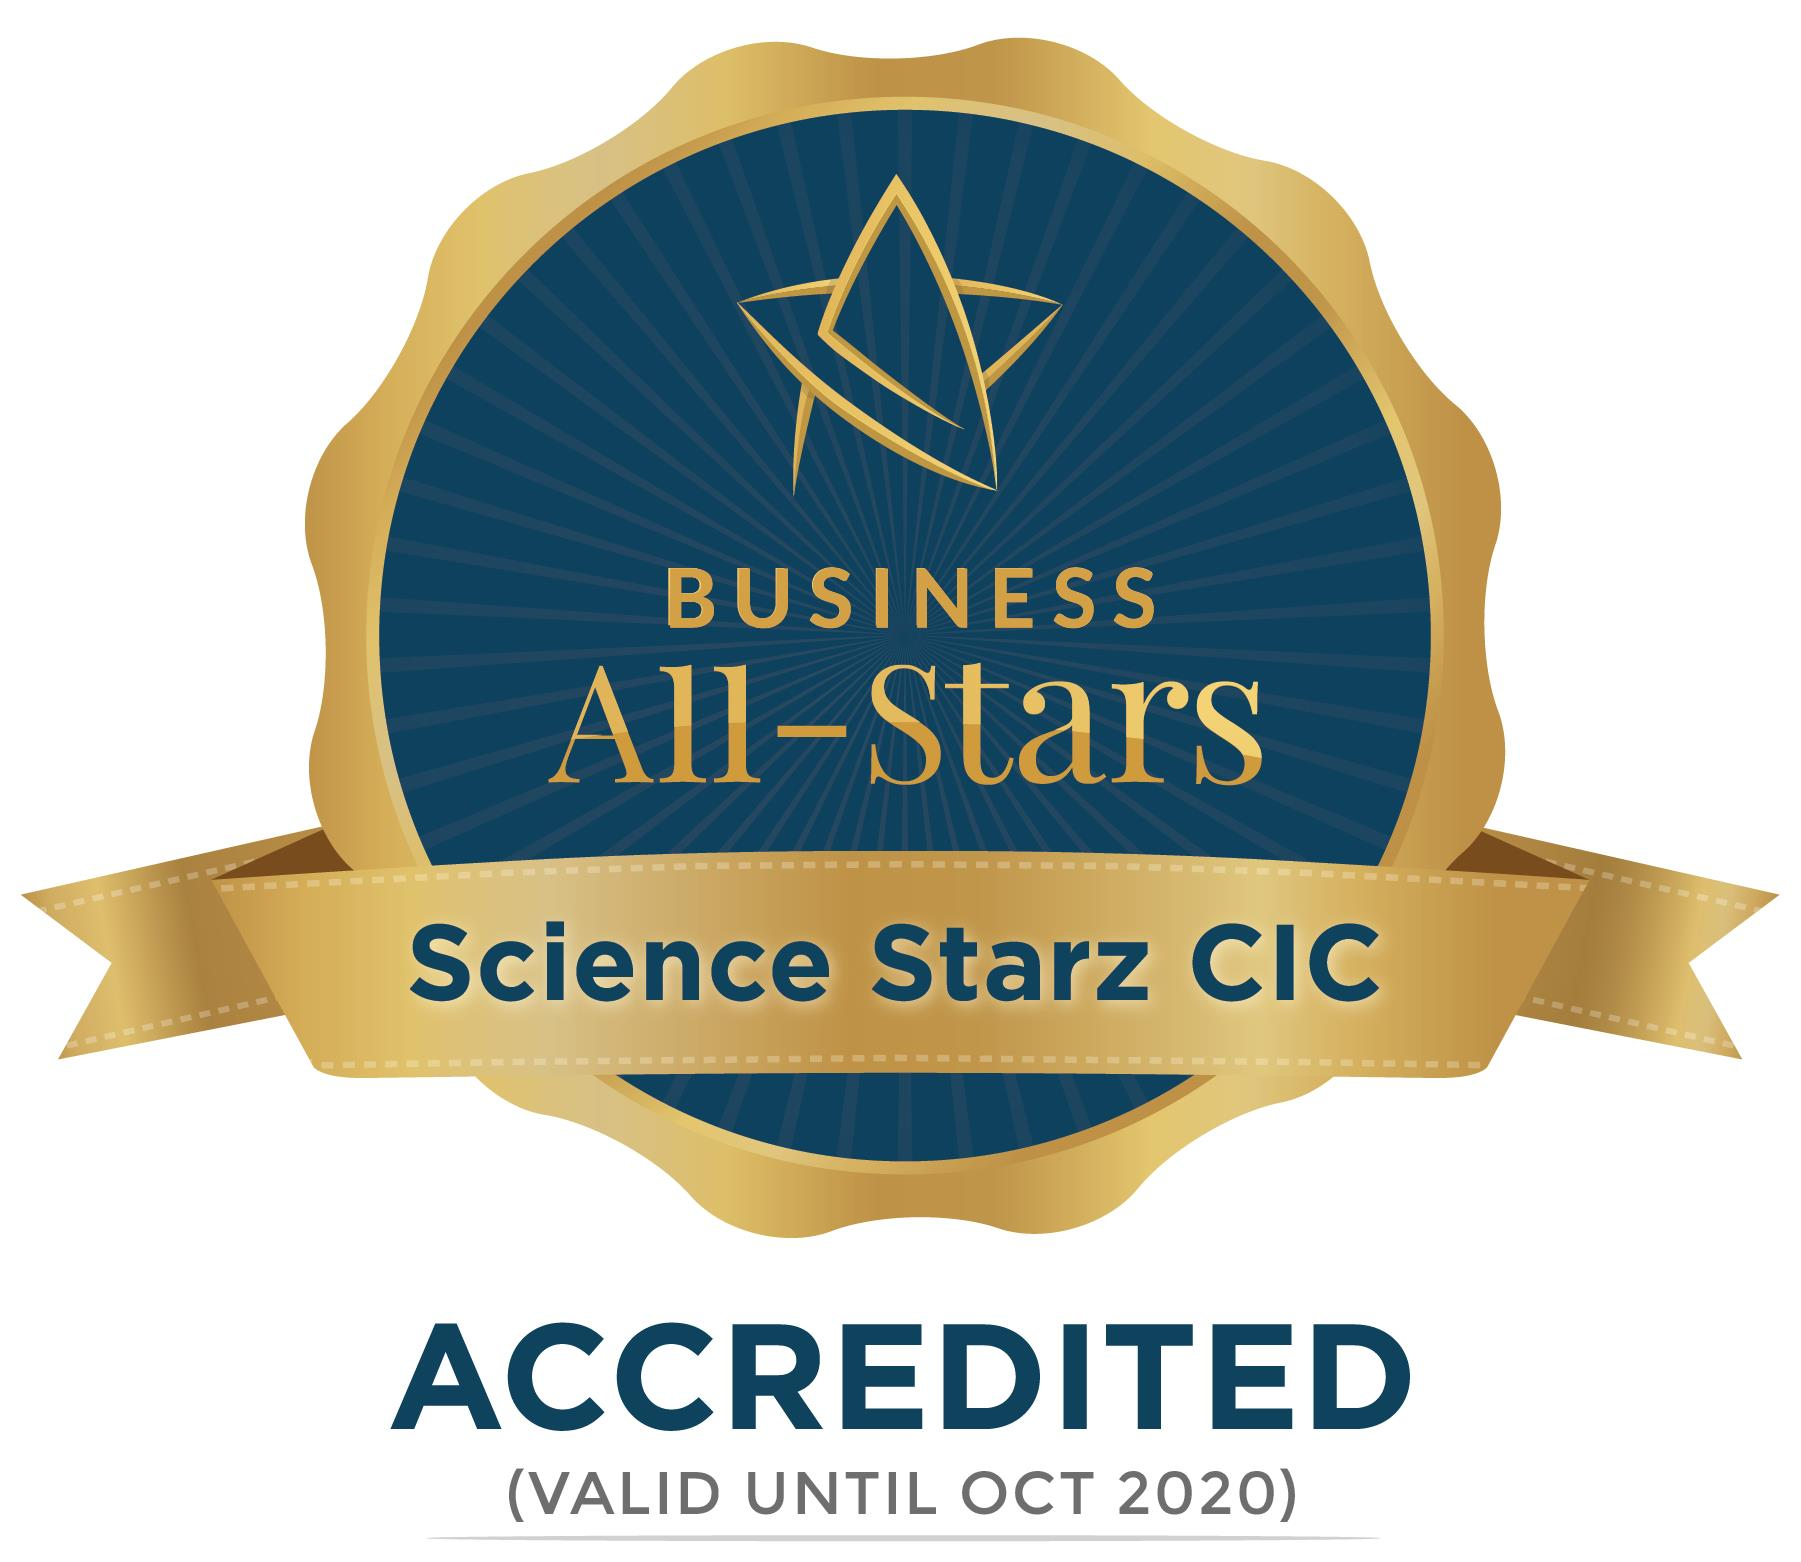 Science Starz CIC - Business All-Stars Accreditation